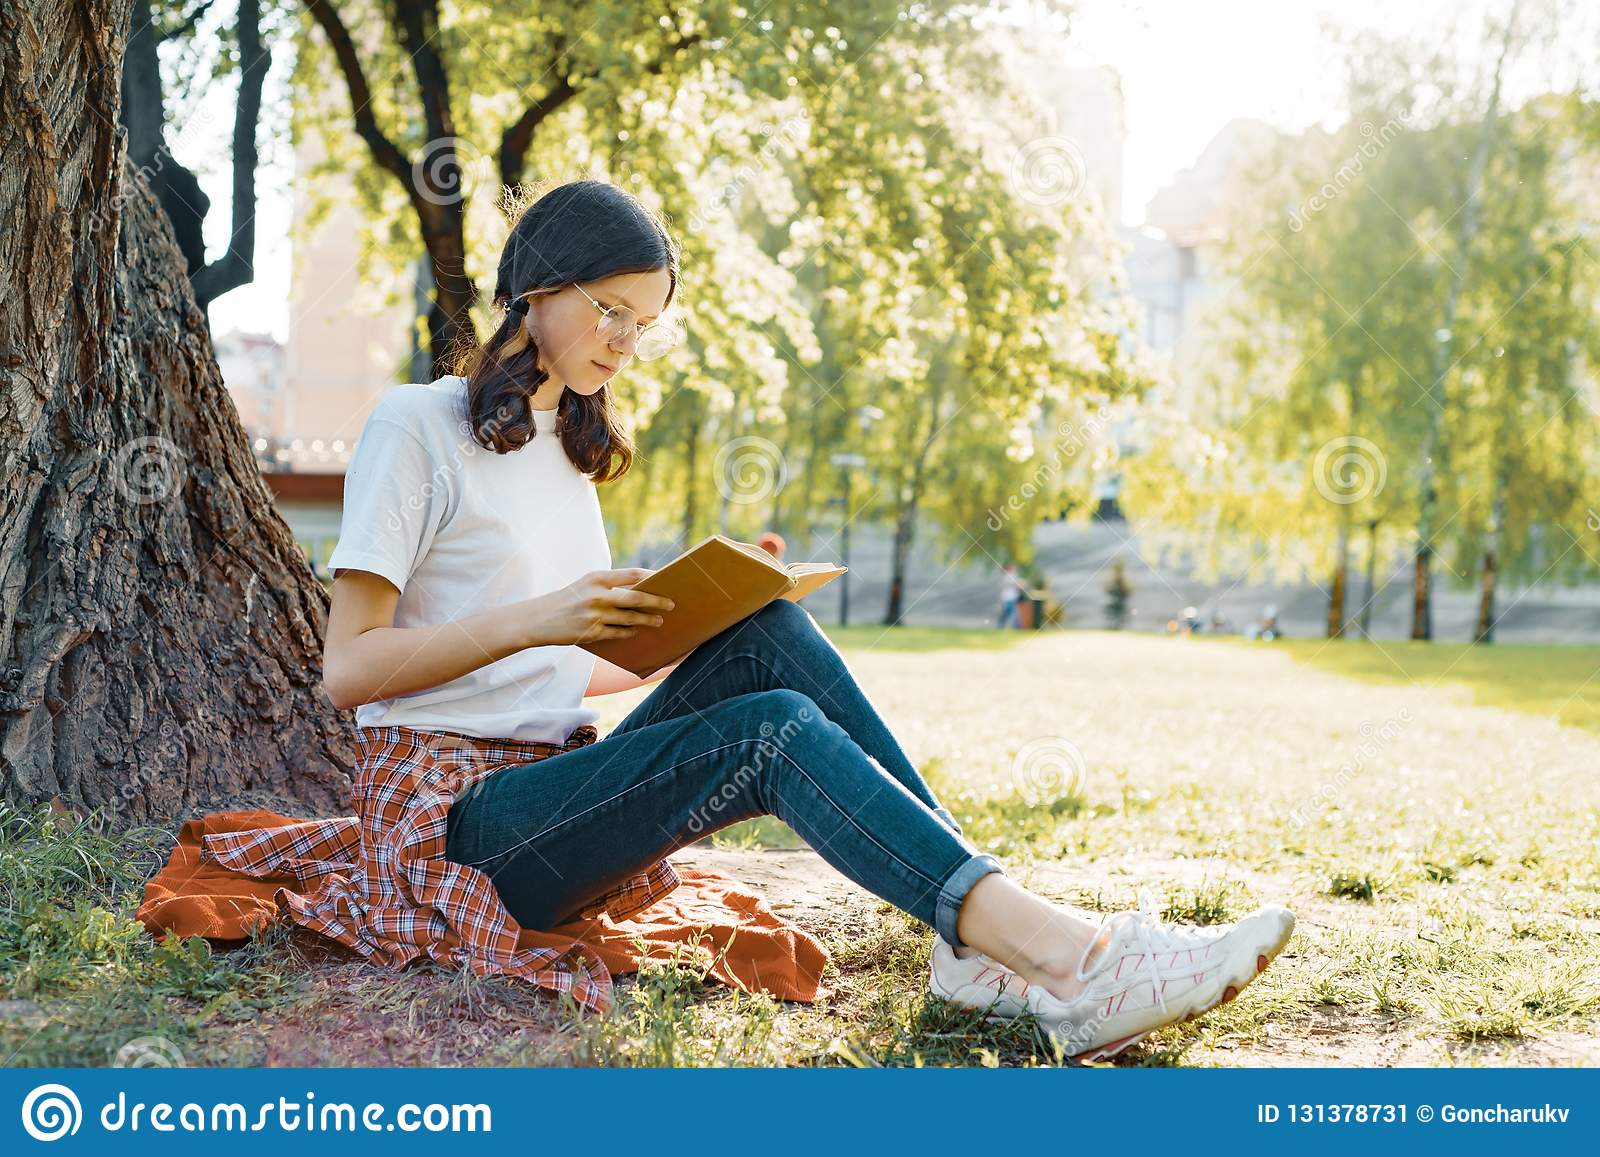 Girl student in glasses reading a book in the park sitting under a tree on the grass